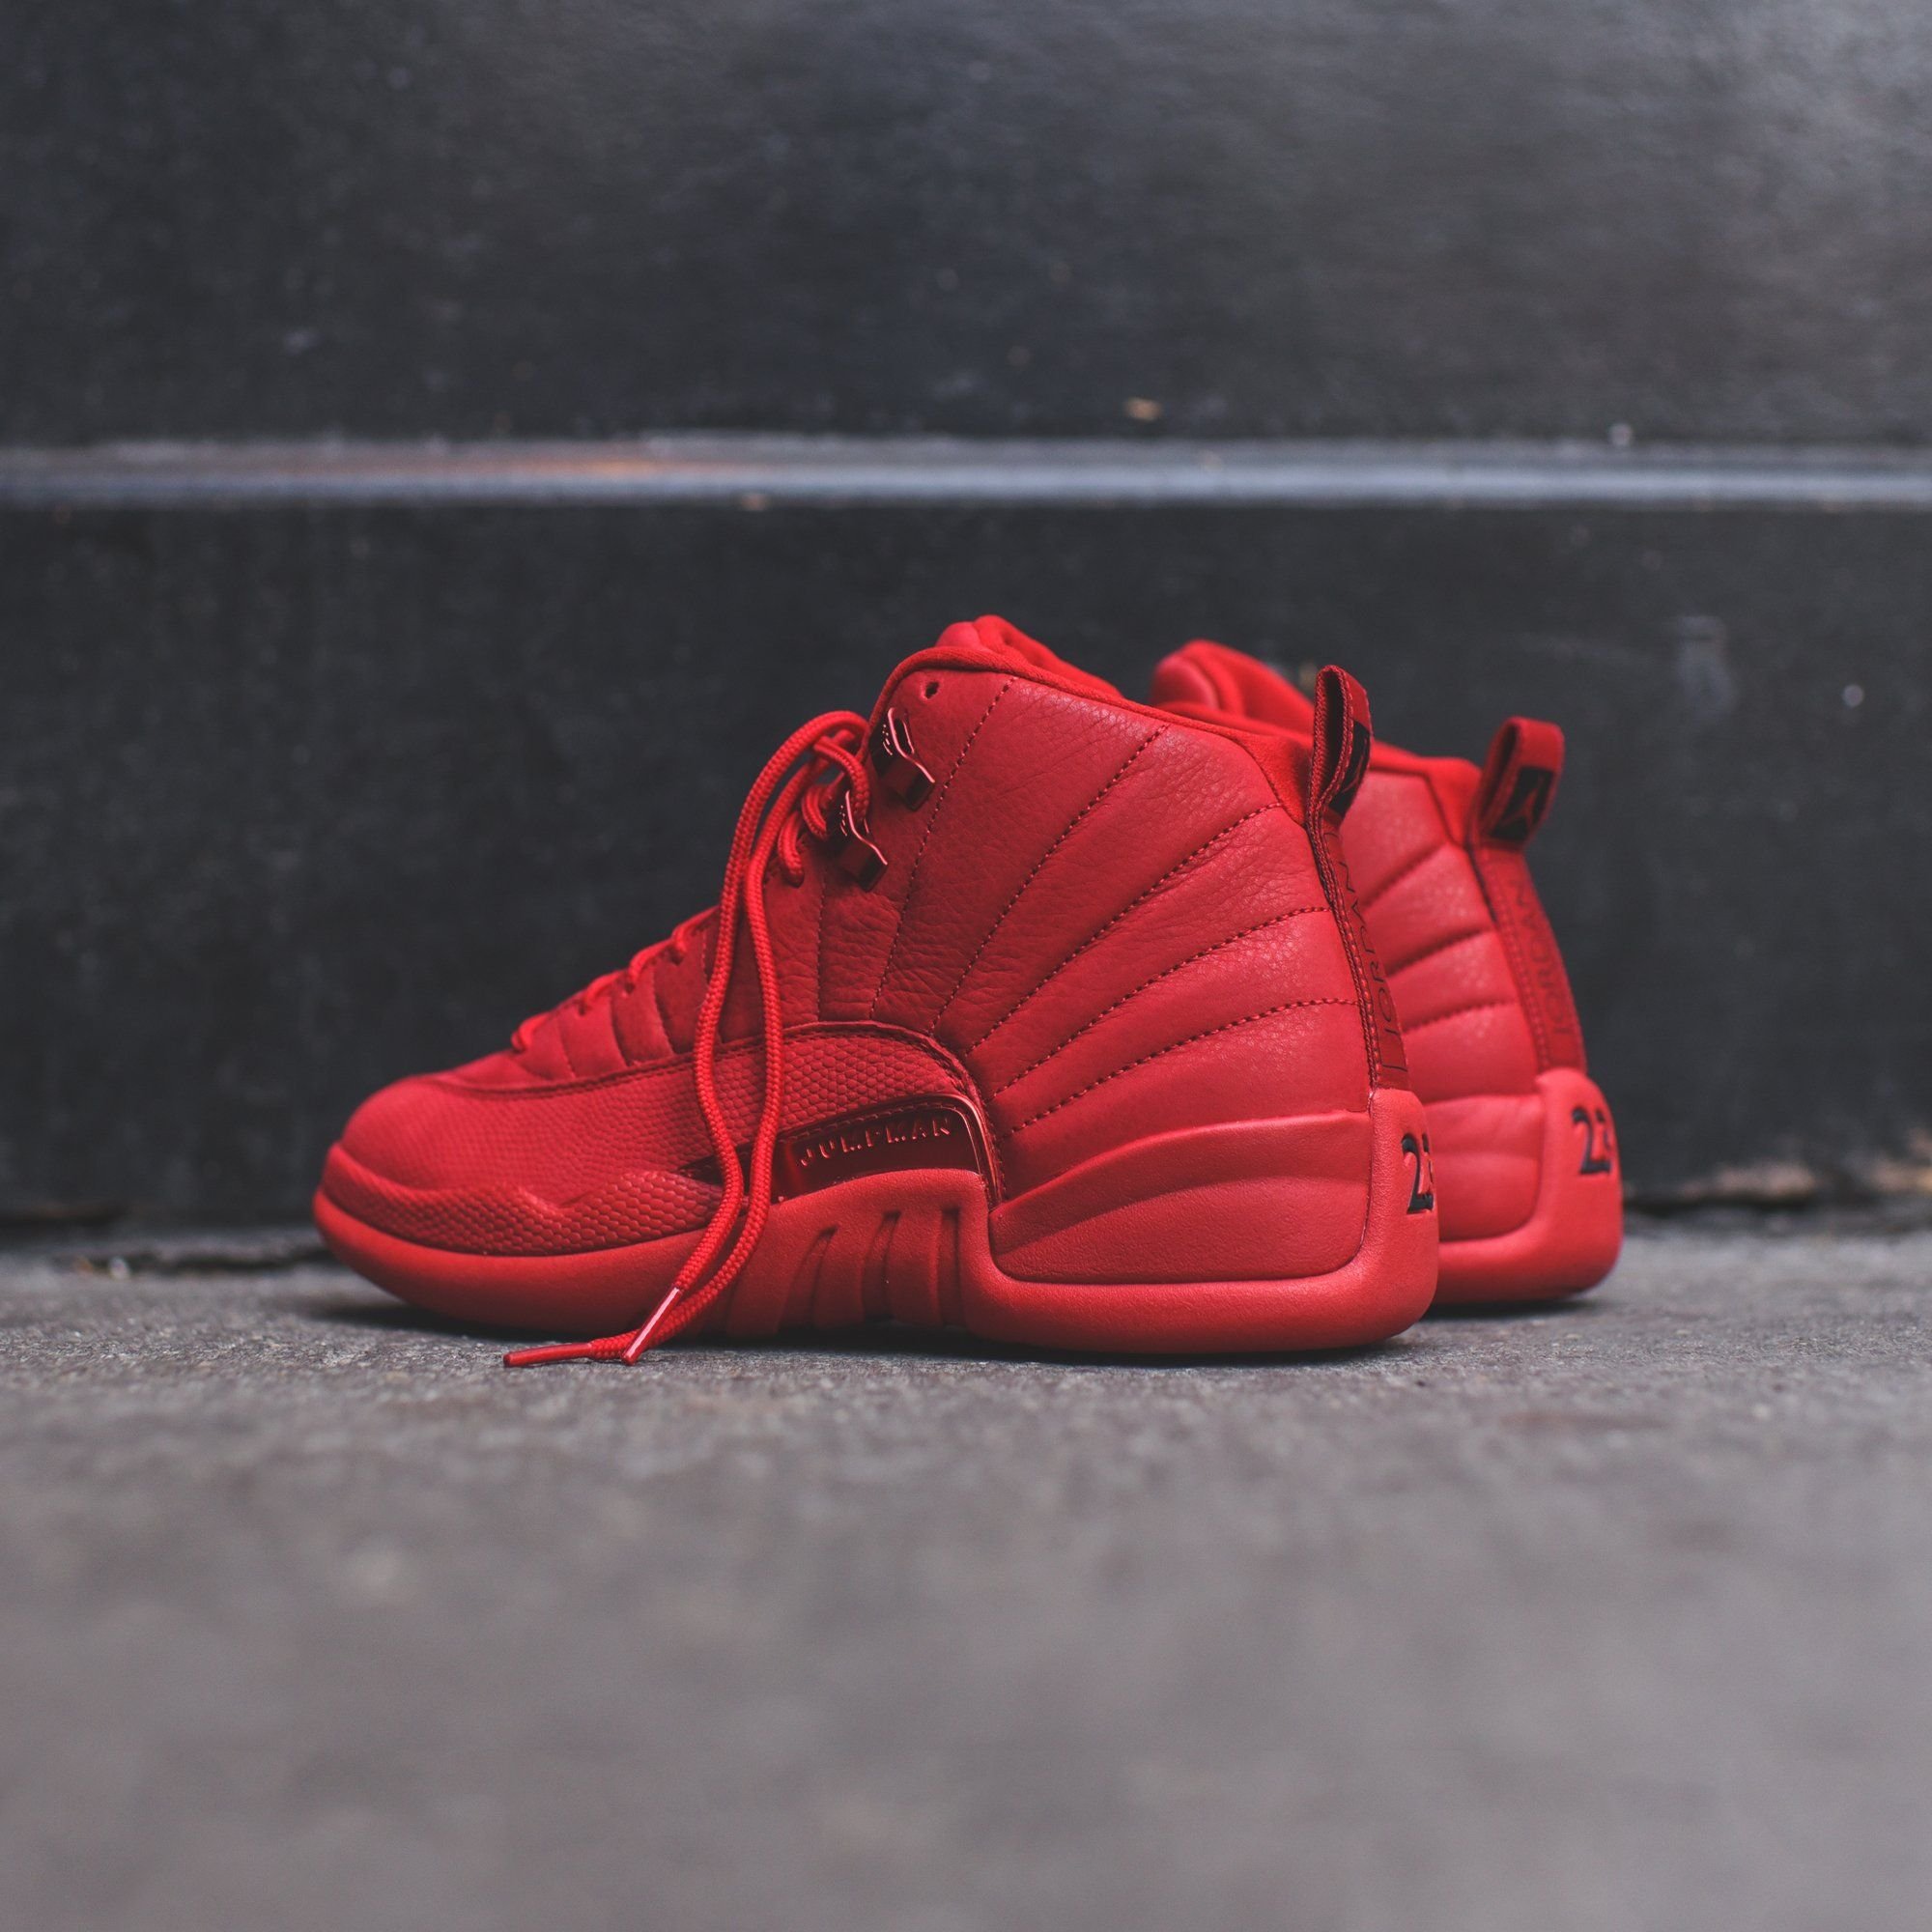 reputable site 51ae7 6f127 Nike Air Jordan 12 Retro - Gym Red / Black - 7 | Air jordans ...